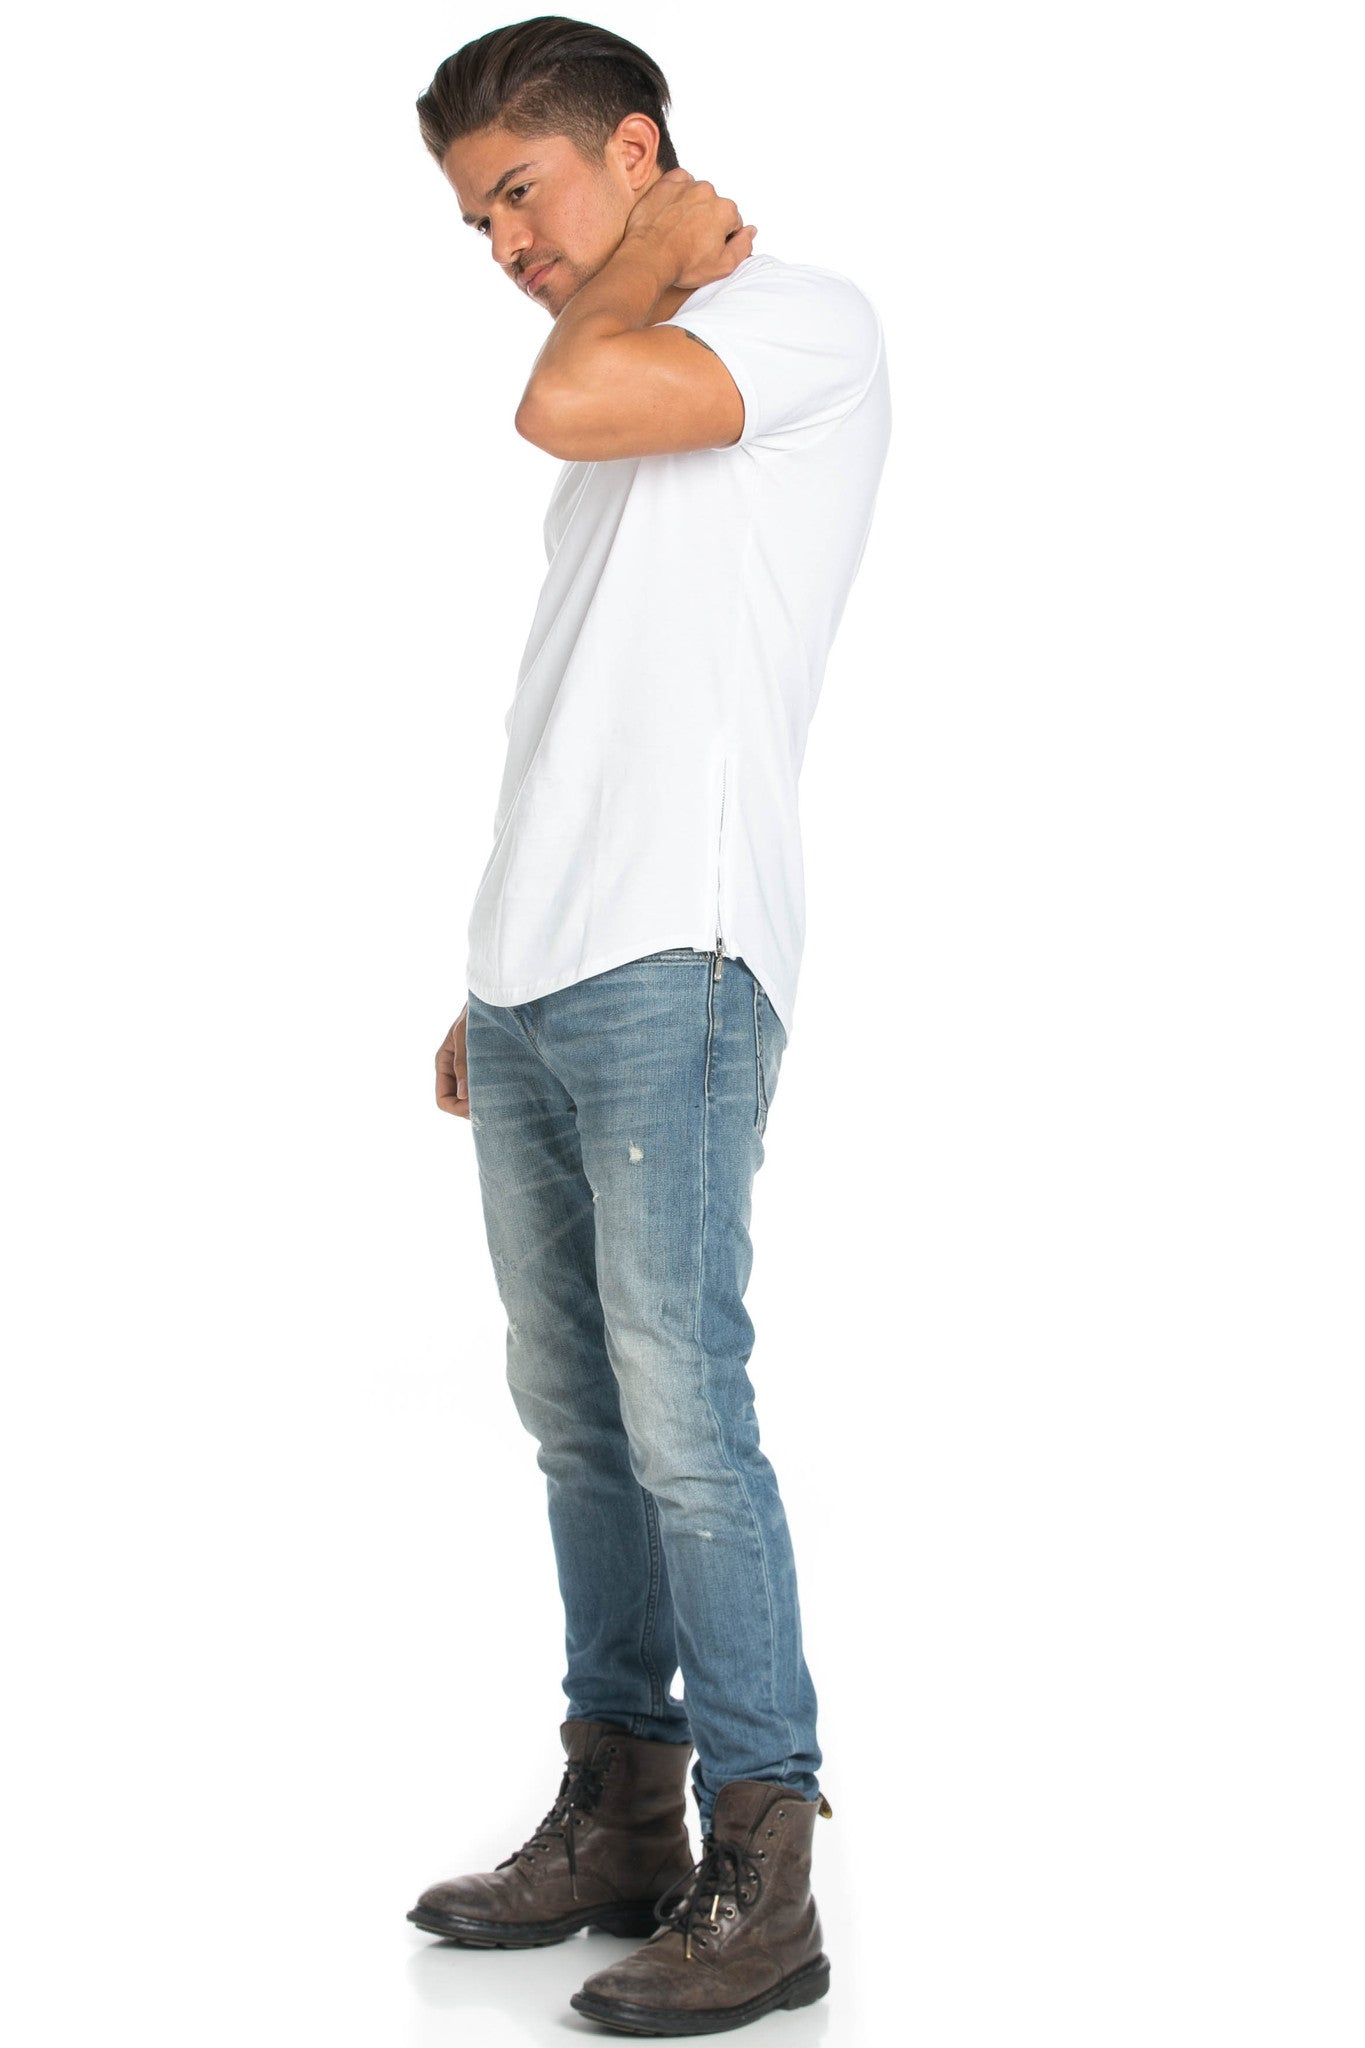 Men's Basic Zipper White T-Shirt - Tops - My Yuccie - 9